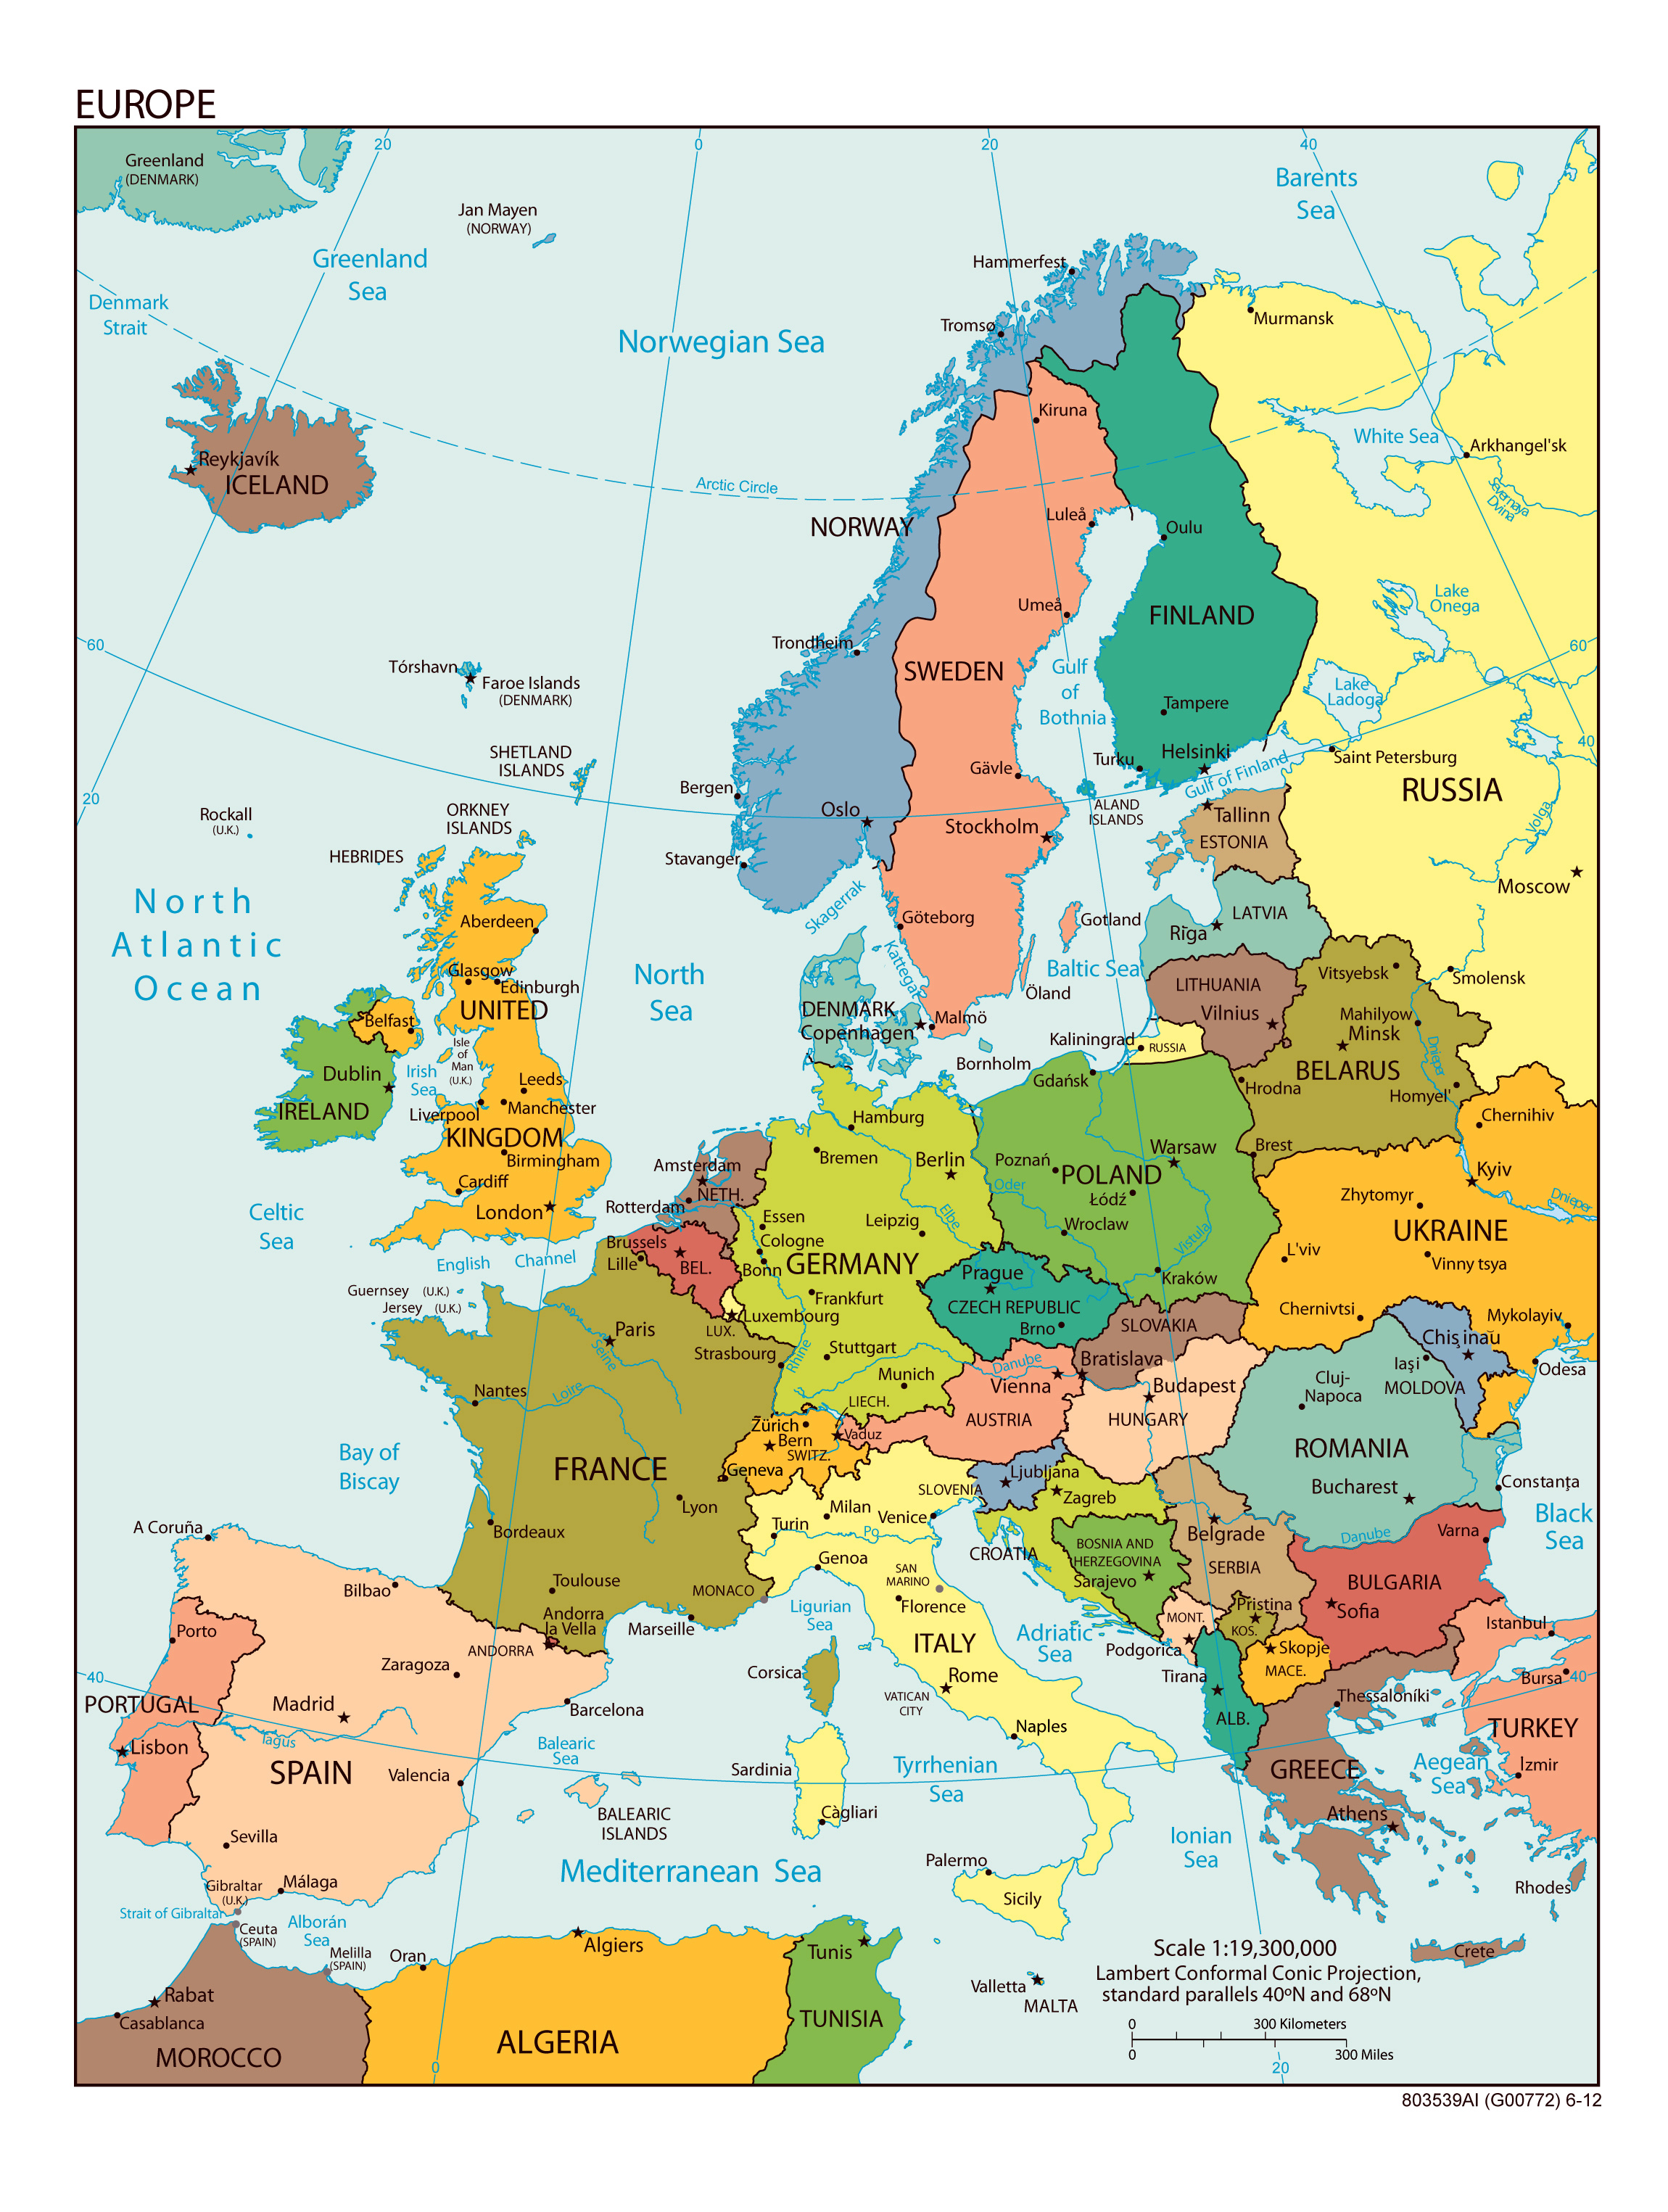 Map Of Europe And Major Cities.Large Detailed Political Map Of Europe With All Capitals And Major